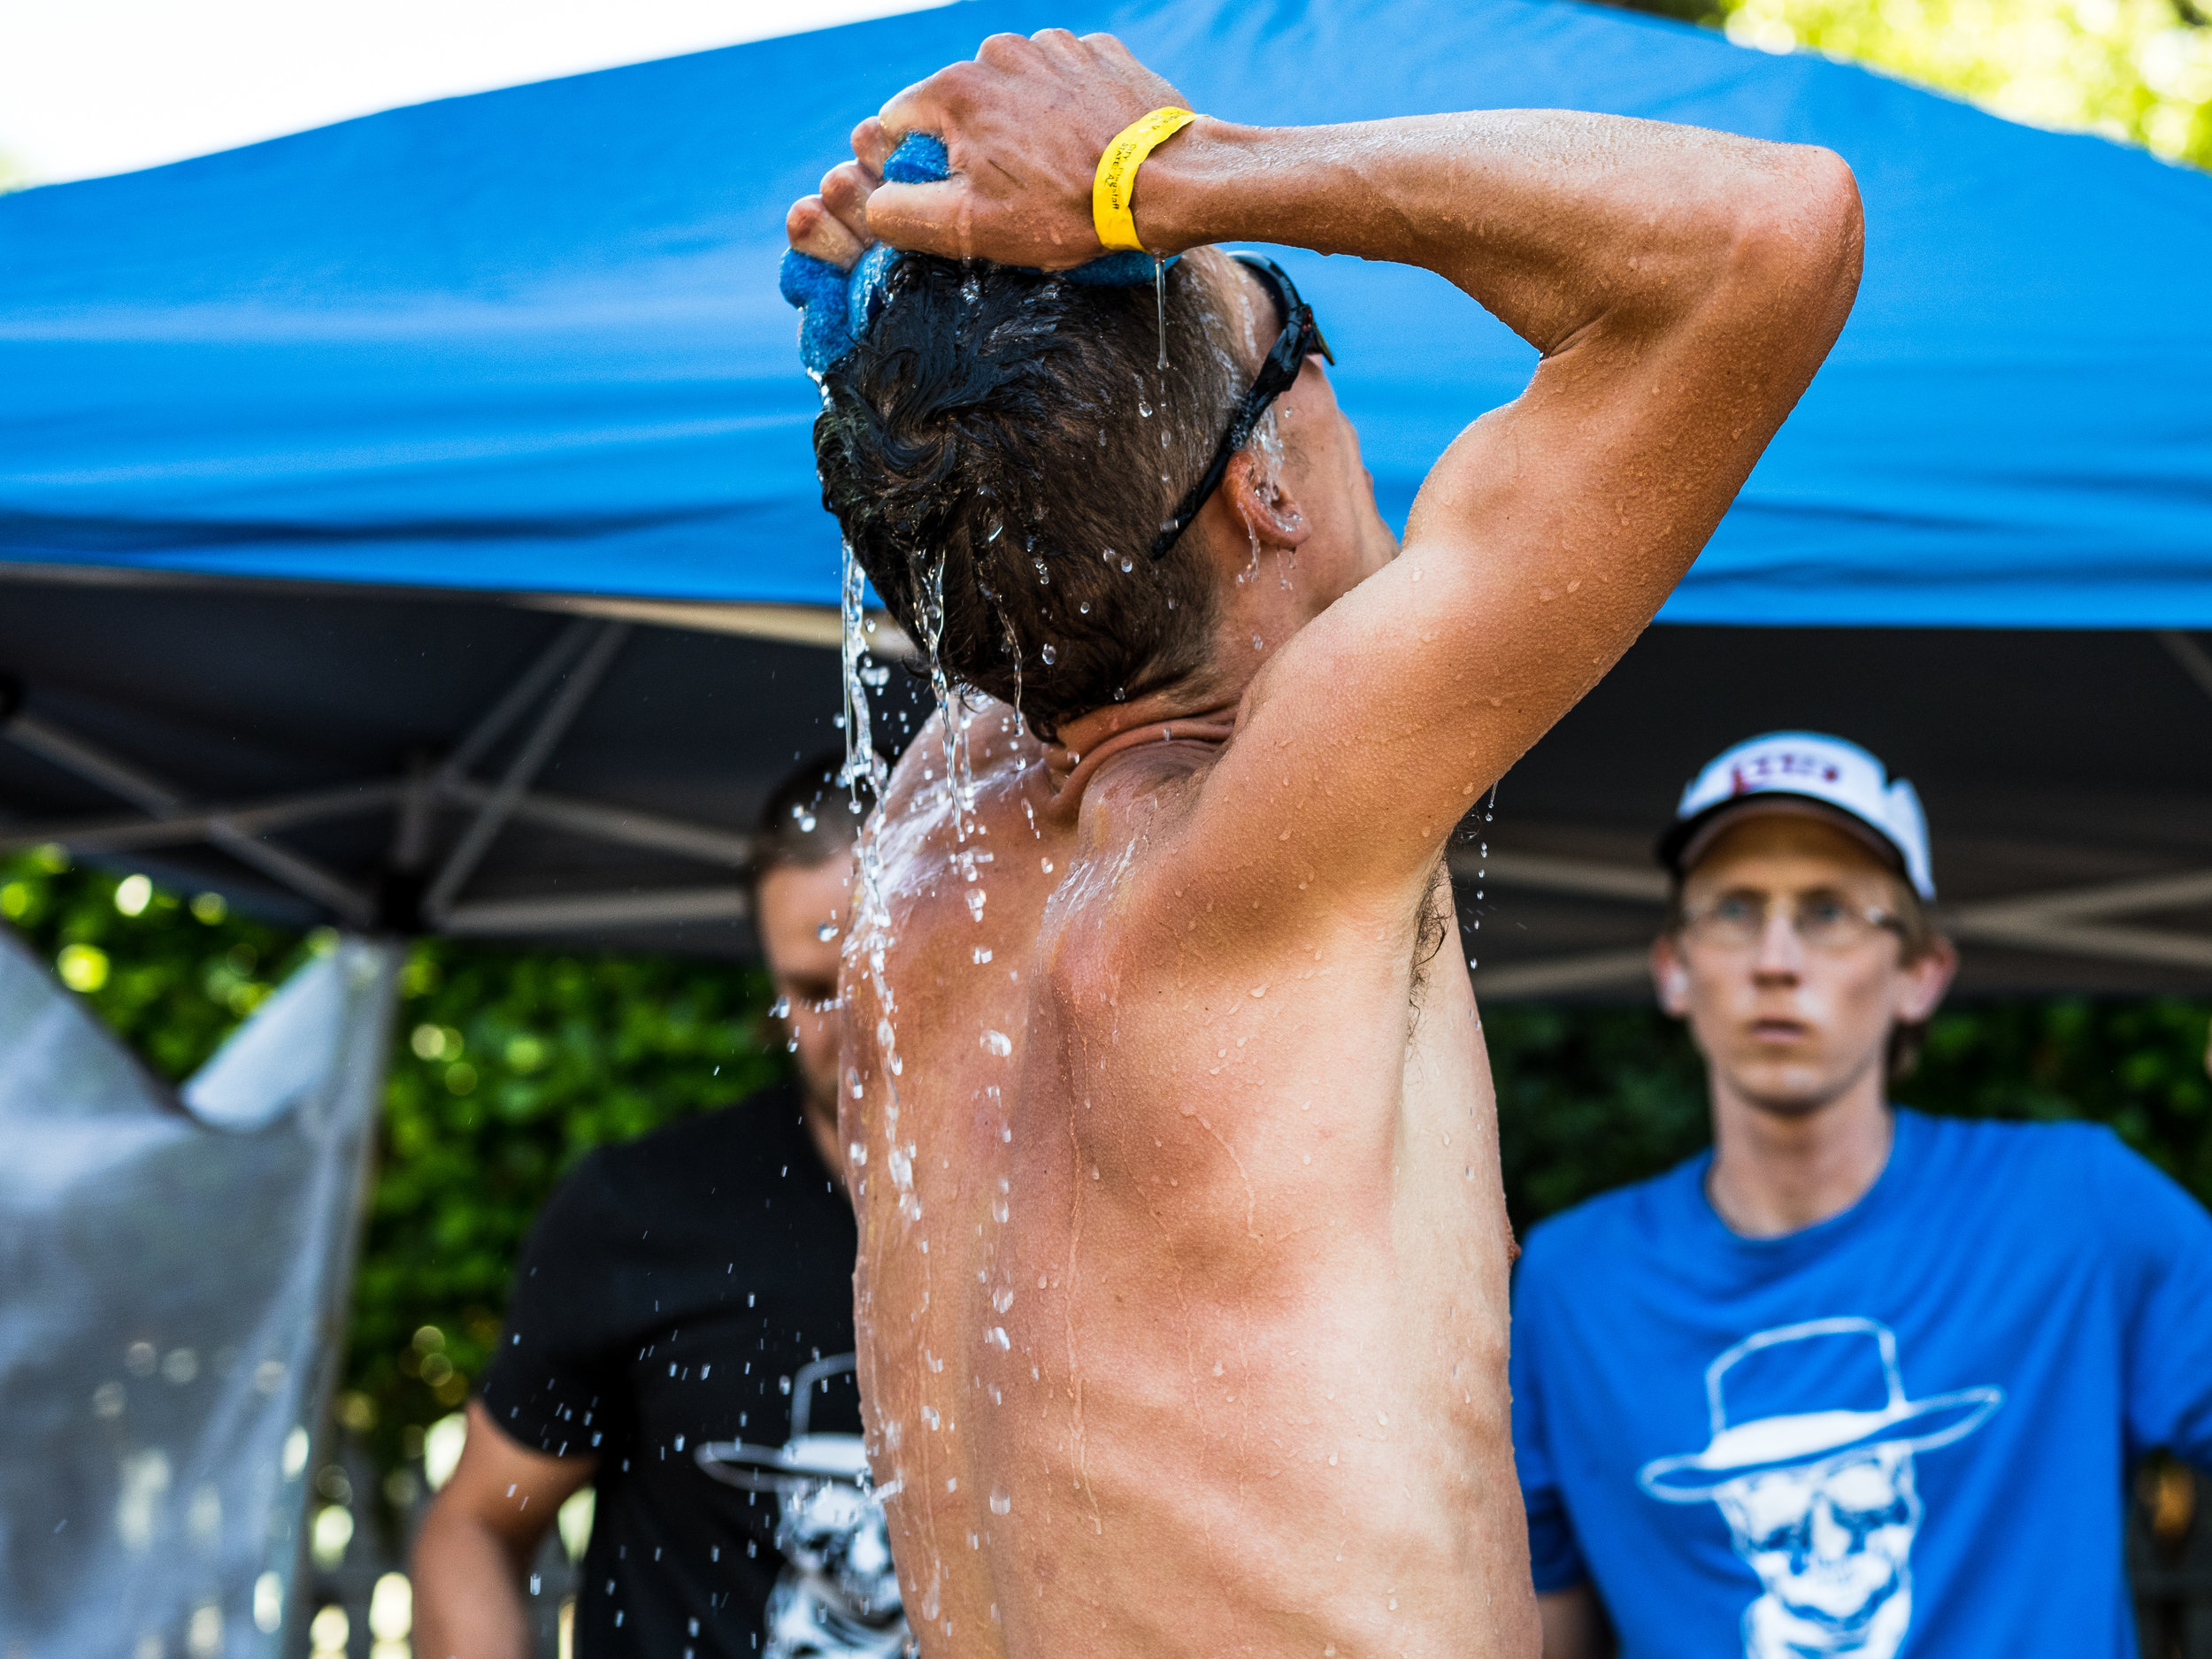 Jim Walmsley_Cooling off at aid station_Ryland West.jpg